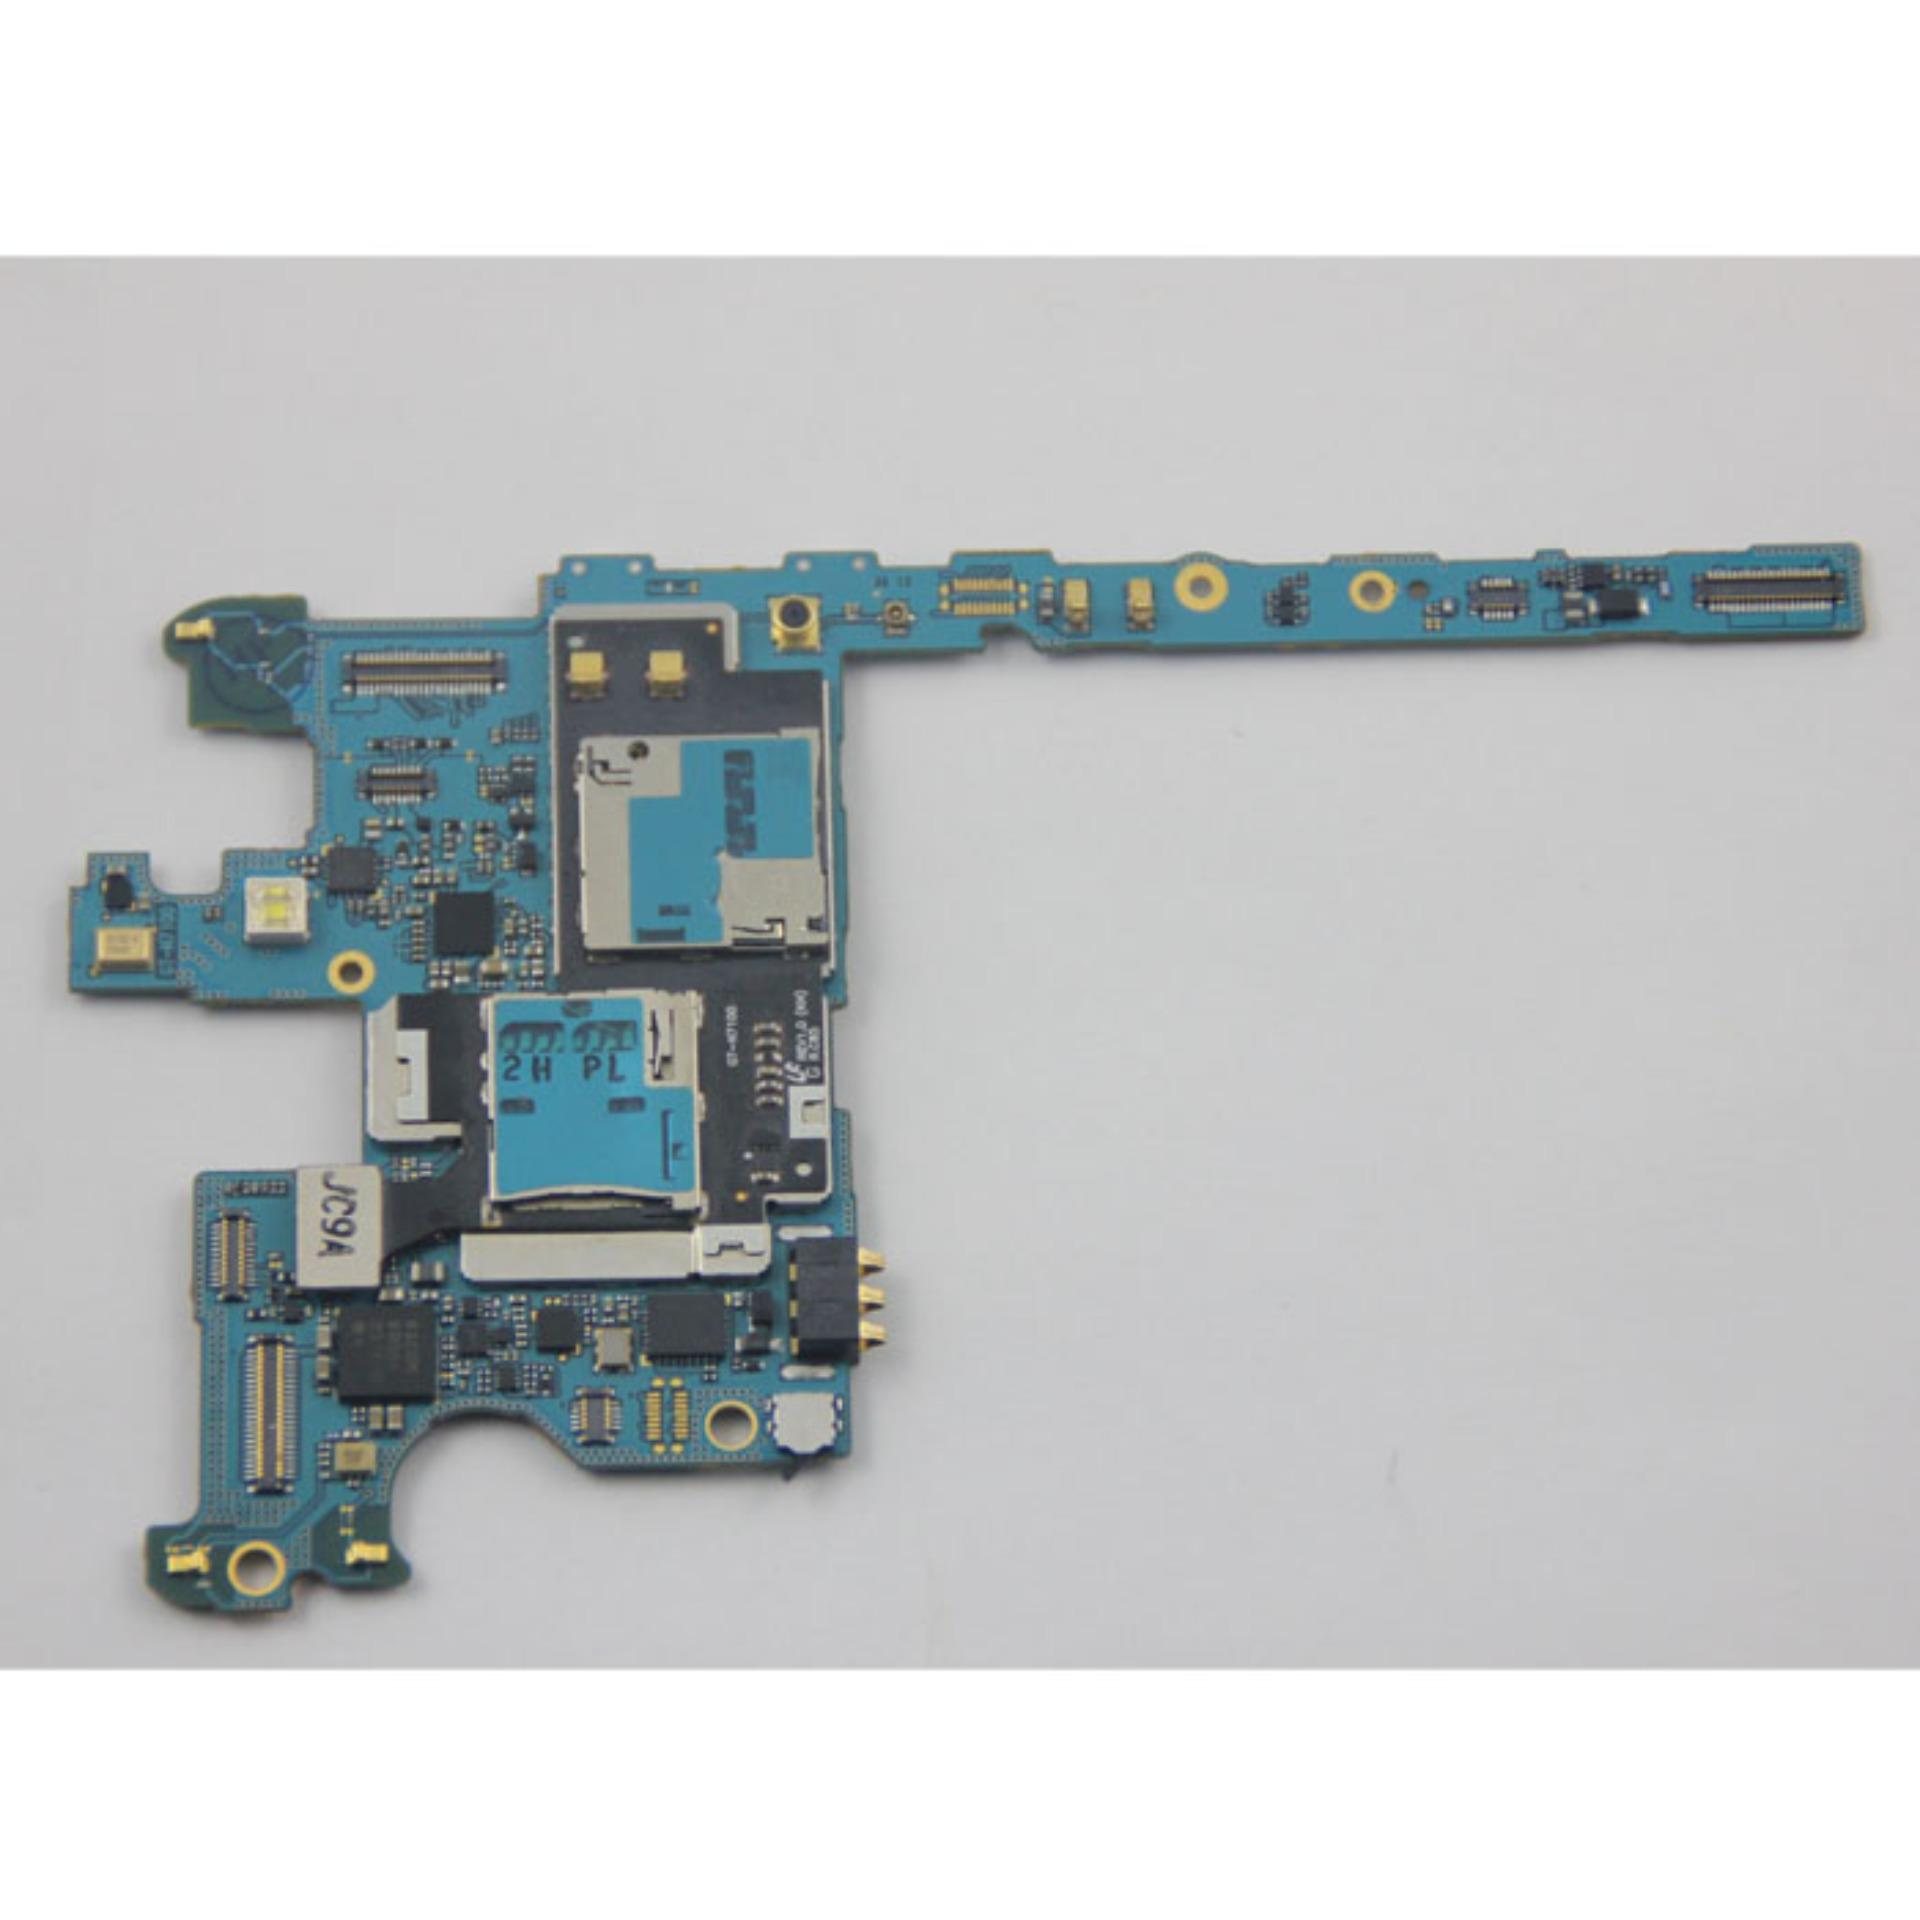 Cellphone Replacement Parts For Sale Mobile Spare Prices Iphone 4 Diagram Logic Board Original Main Mother Mainboard Motherboard Samsung Galaxy Note 2 N7100 Europe Version